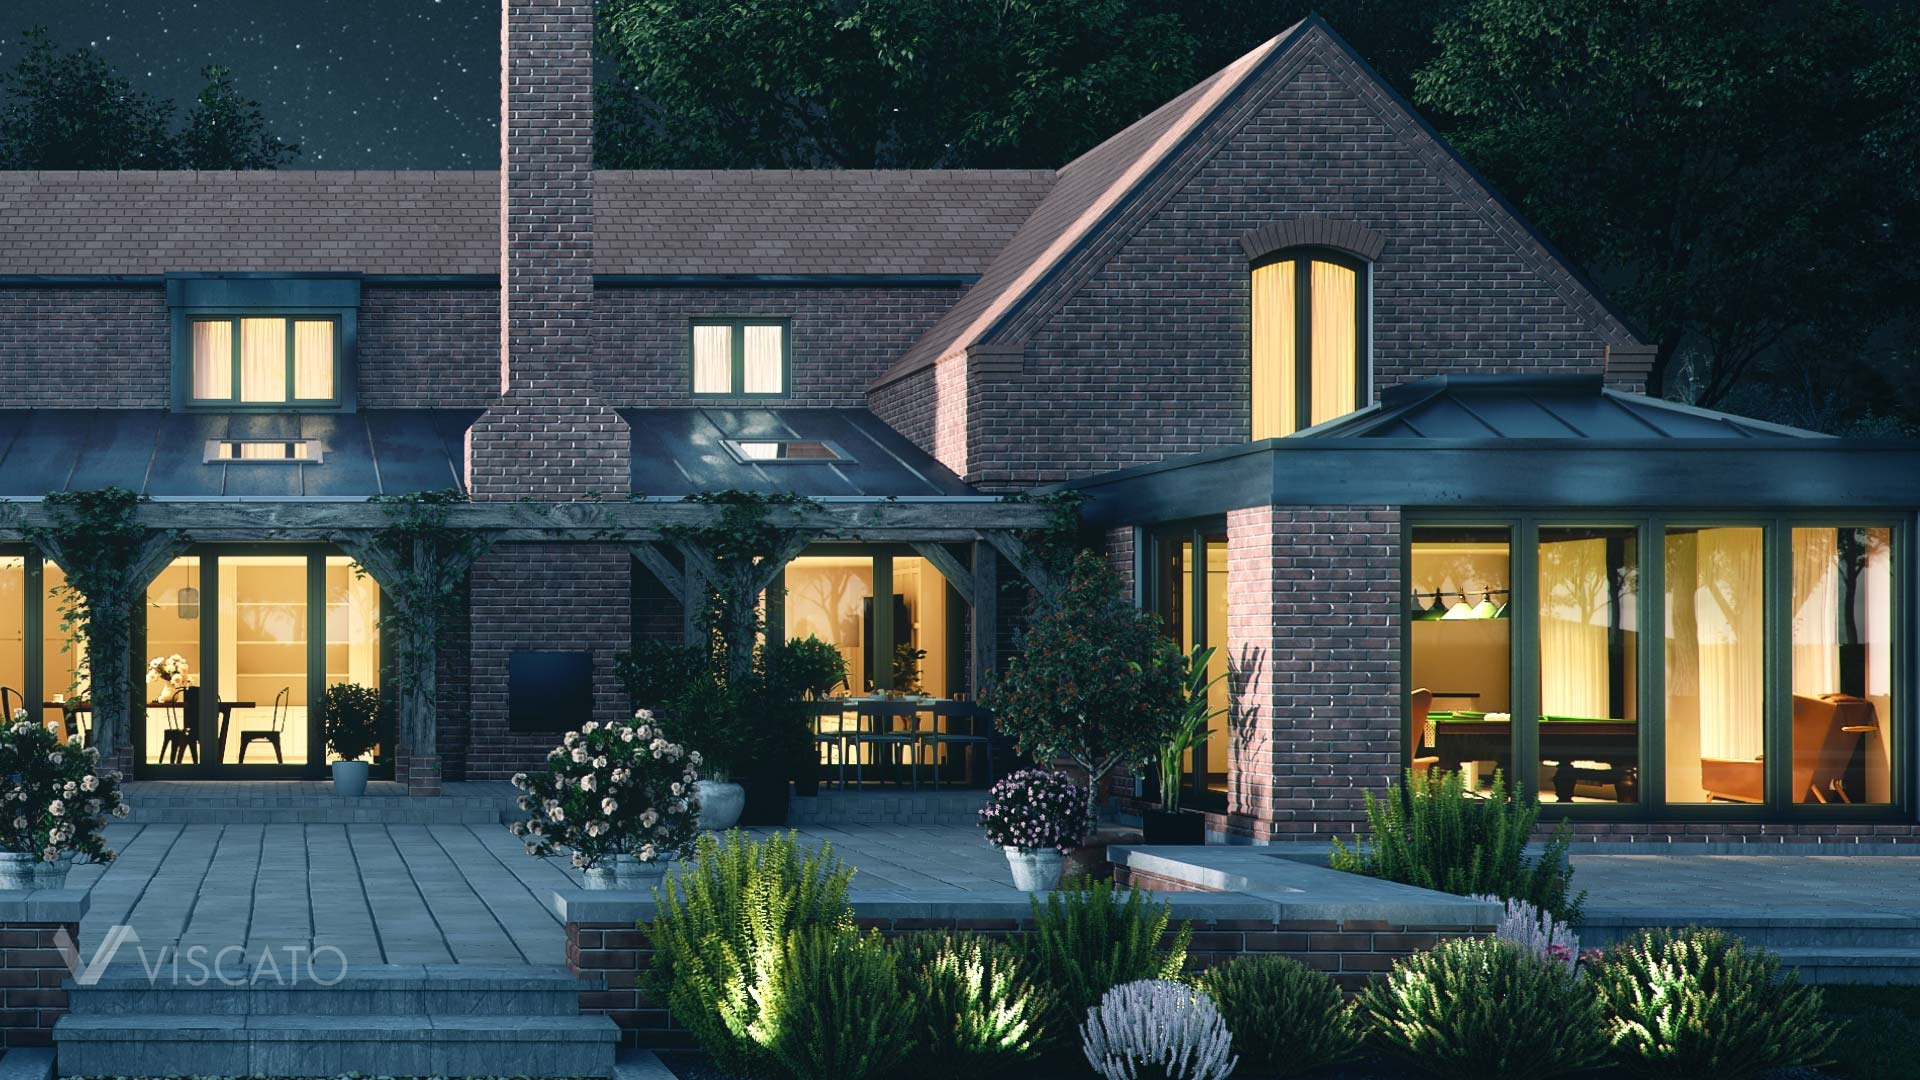 3D rendering of a detached house in England, detailed view from the back